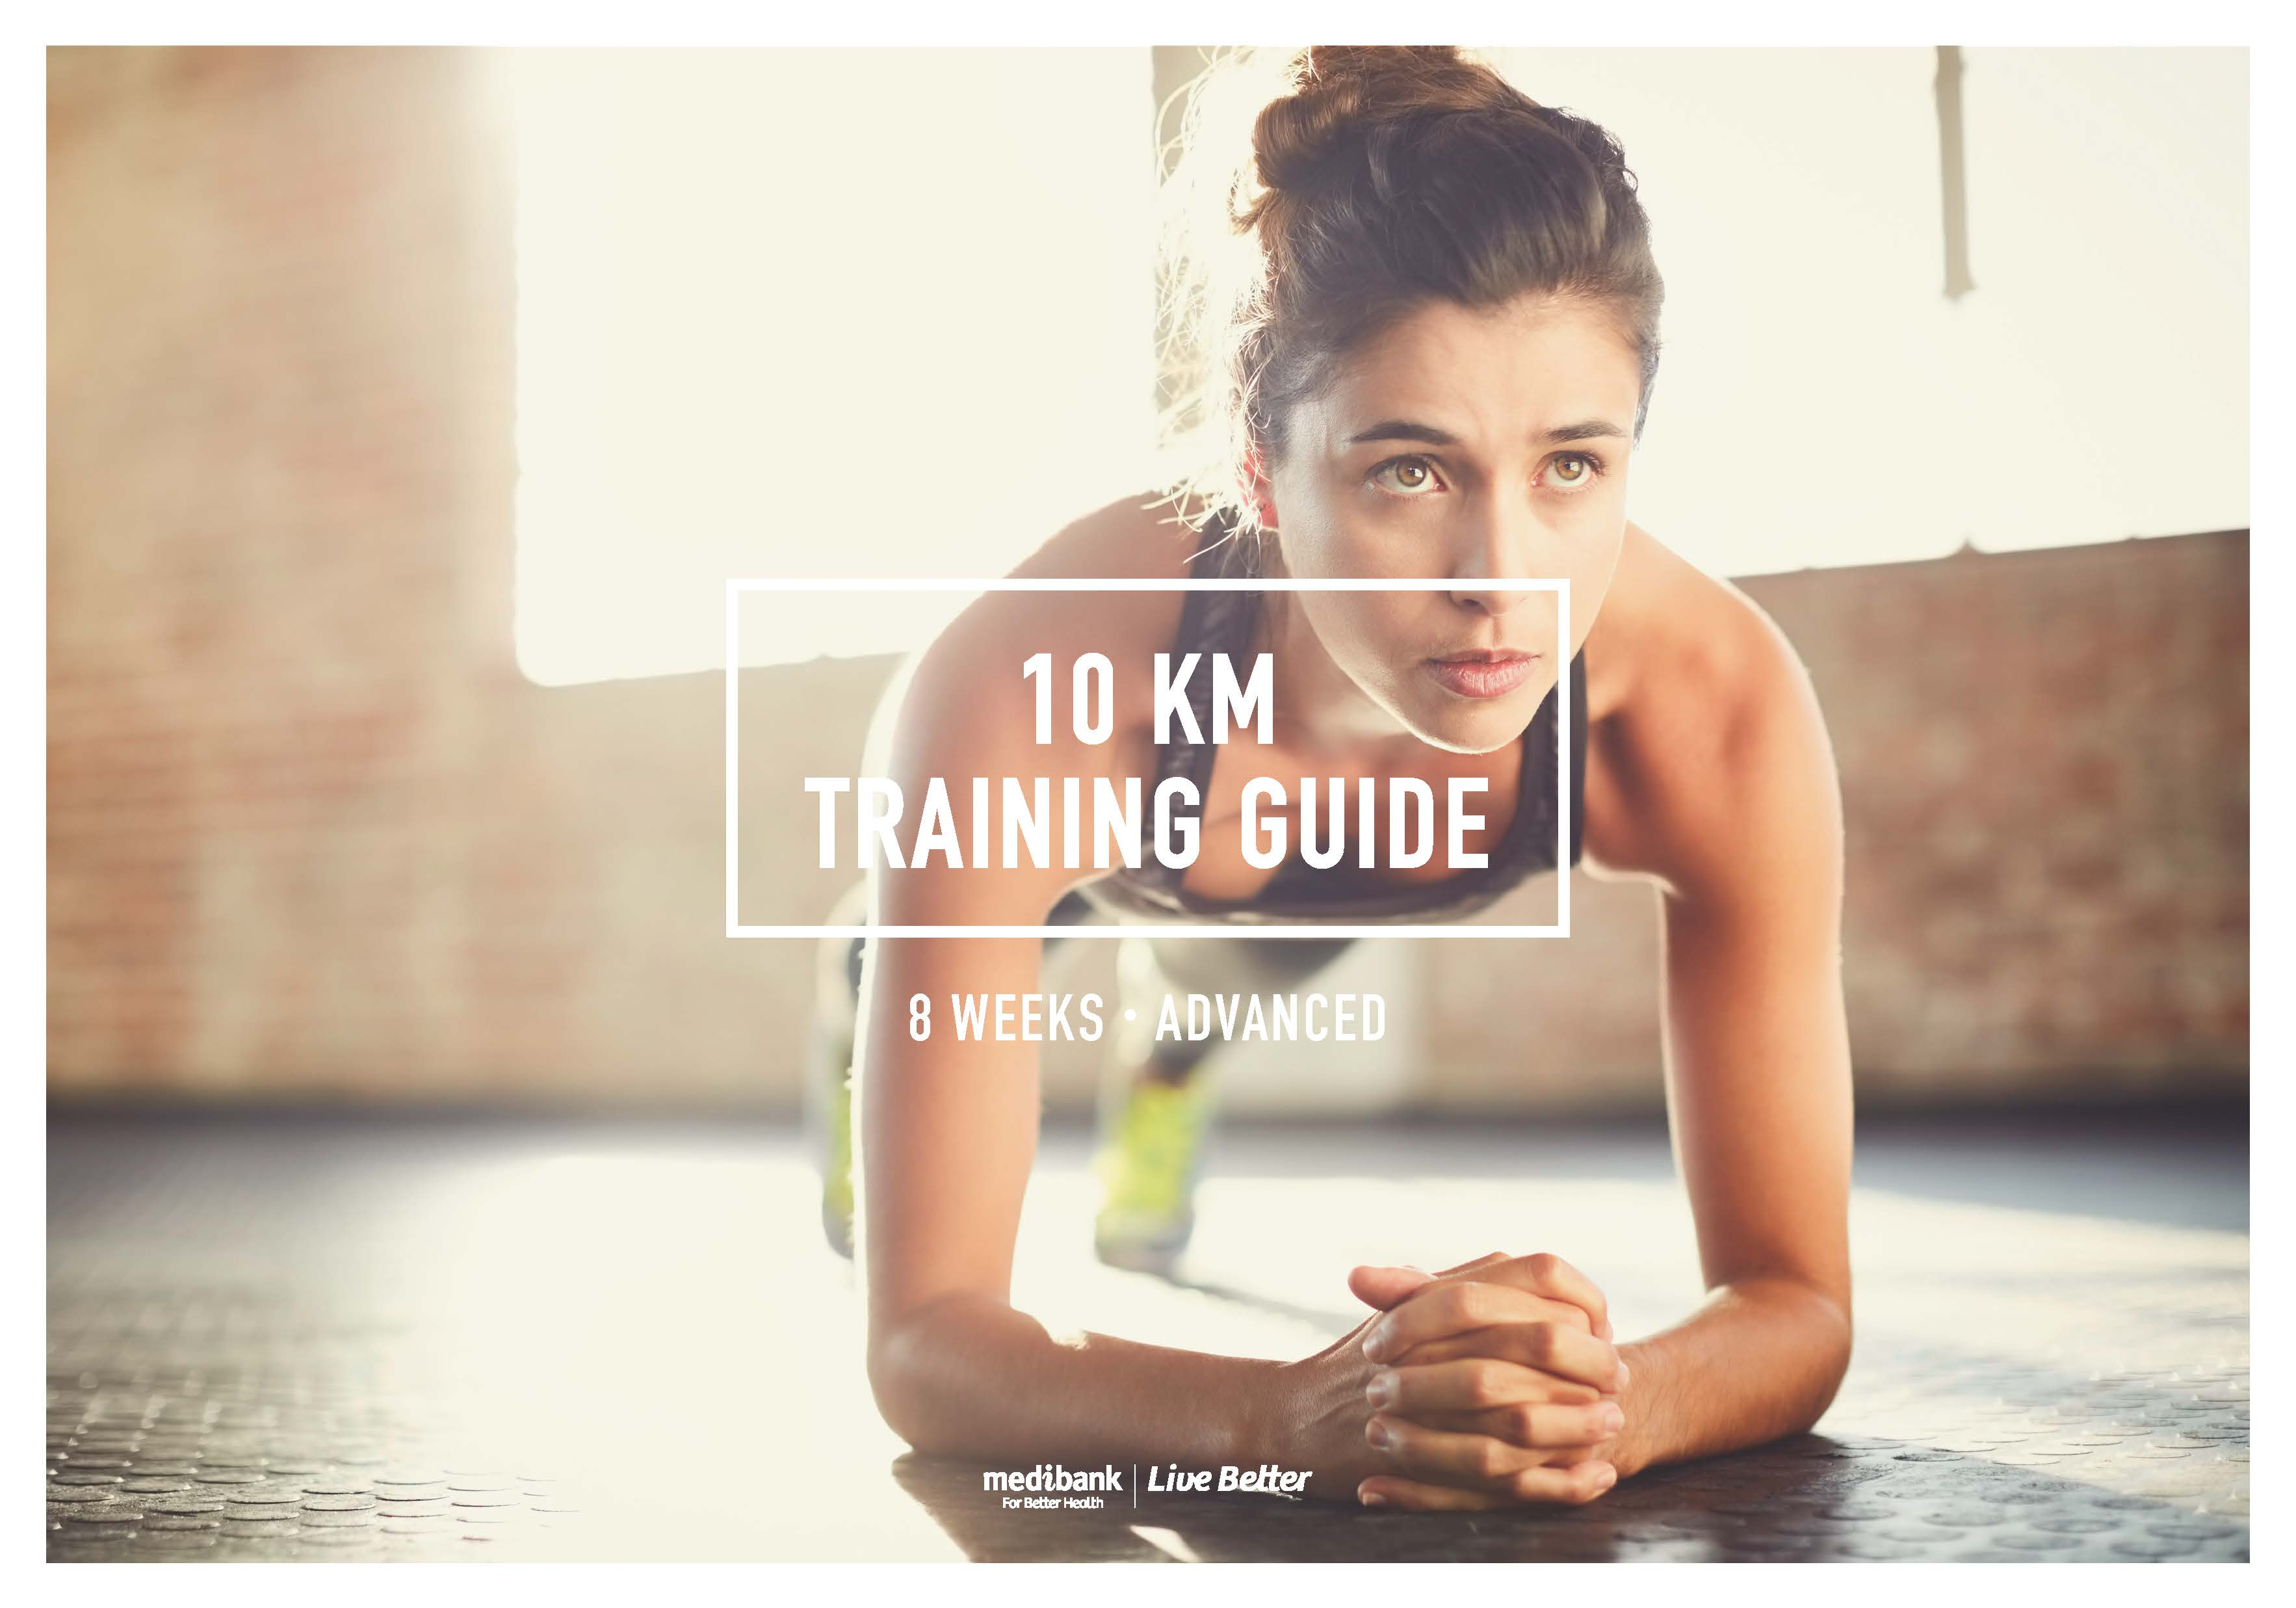 Training Guide 10km Advanced 8week_Page_1